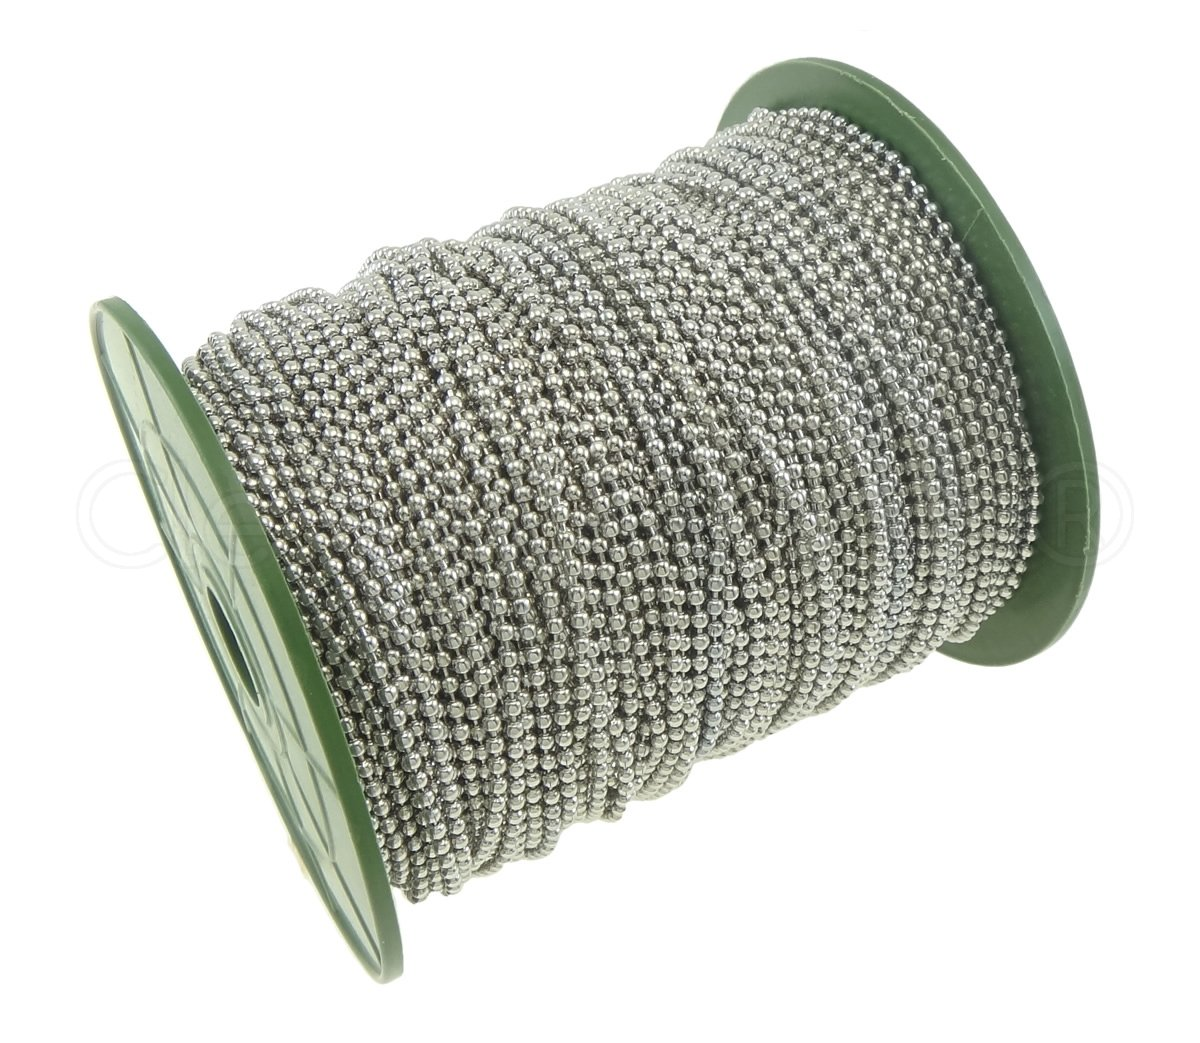 CleverDelights Ball Chain Spool - 330 Feet - Platinum (Antique Silver) Color - 2.4mm Ball - #3 Size by CleverDelights